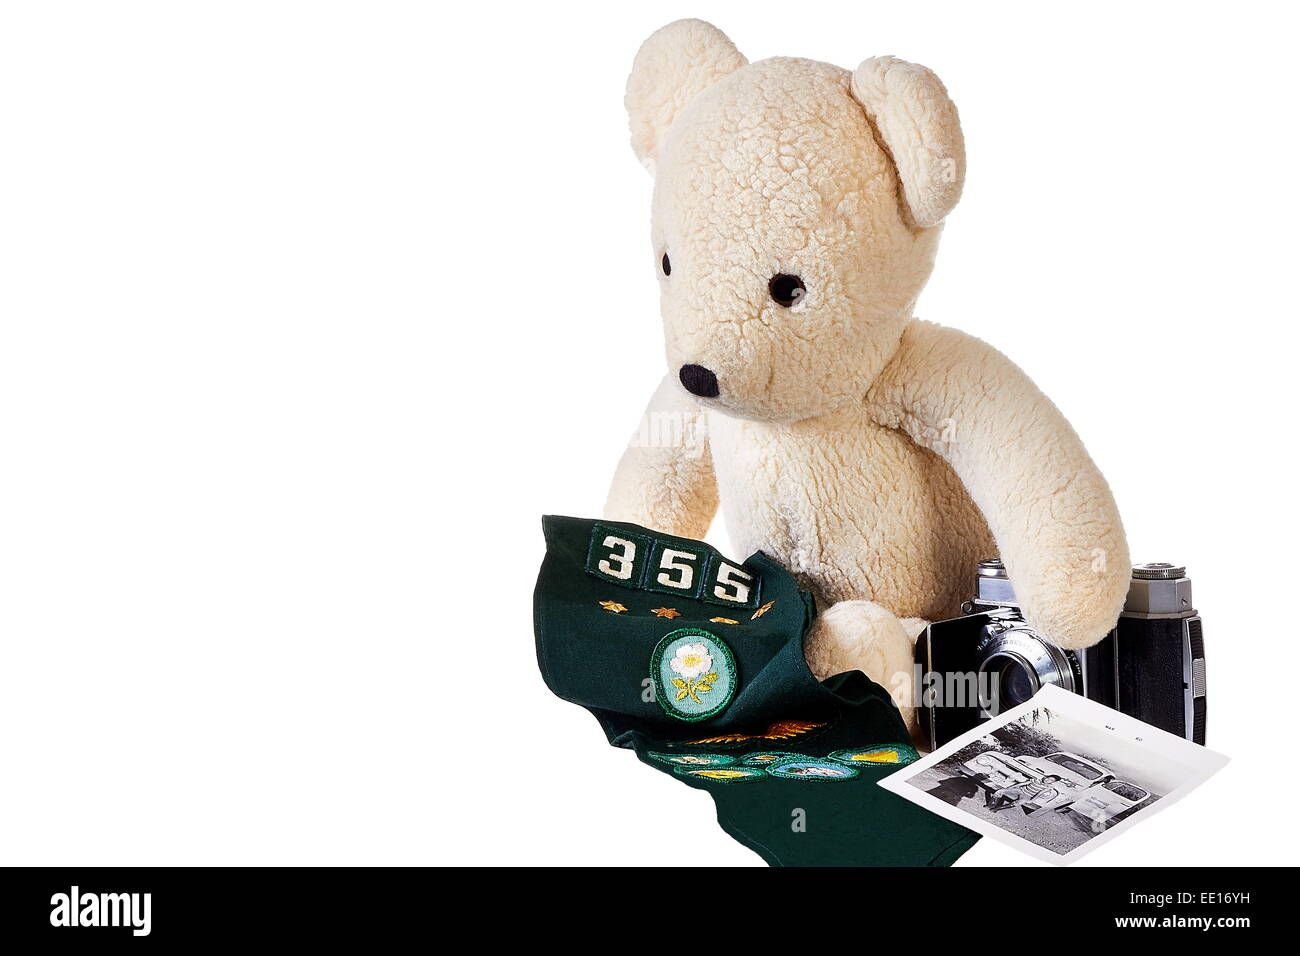 Old teddy bear with camera and badges - Stock Image